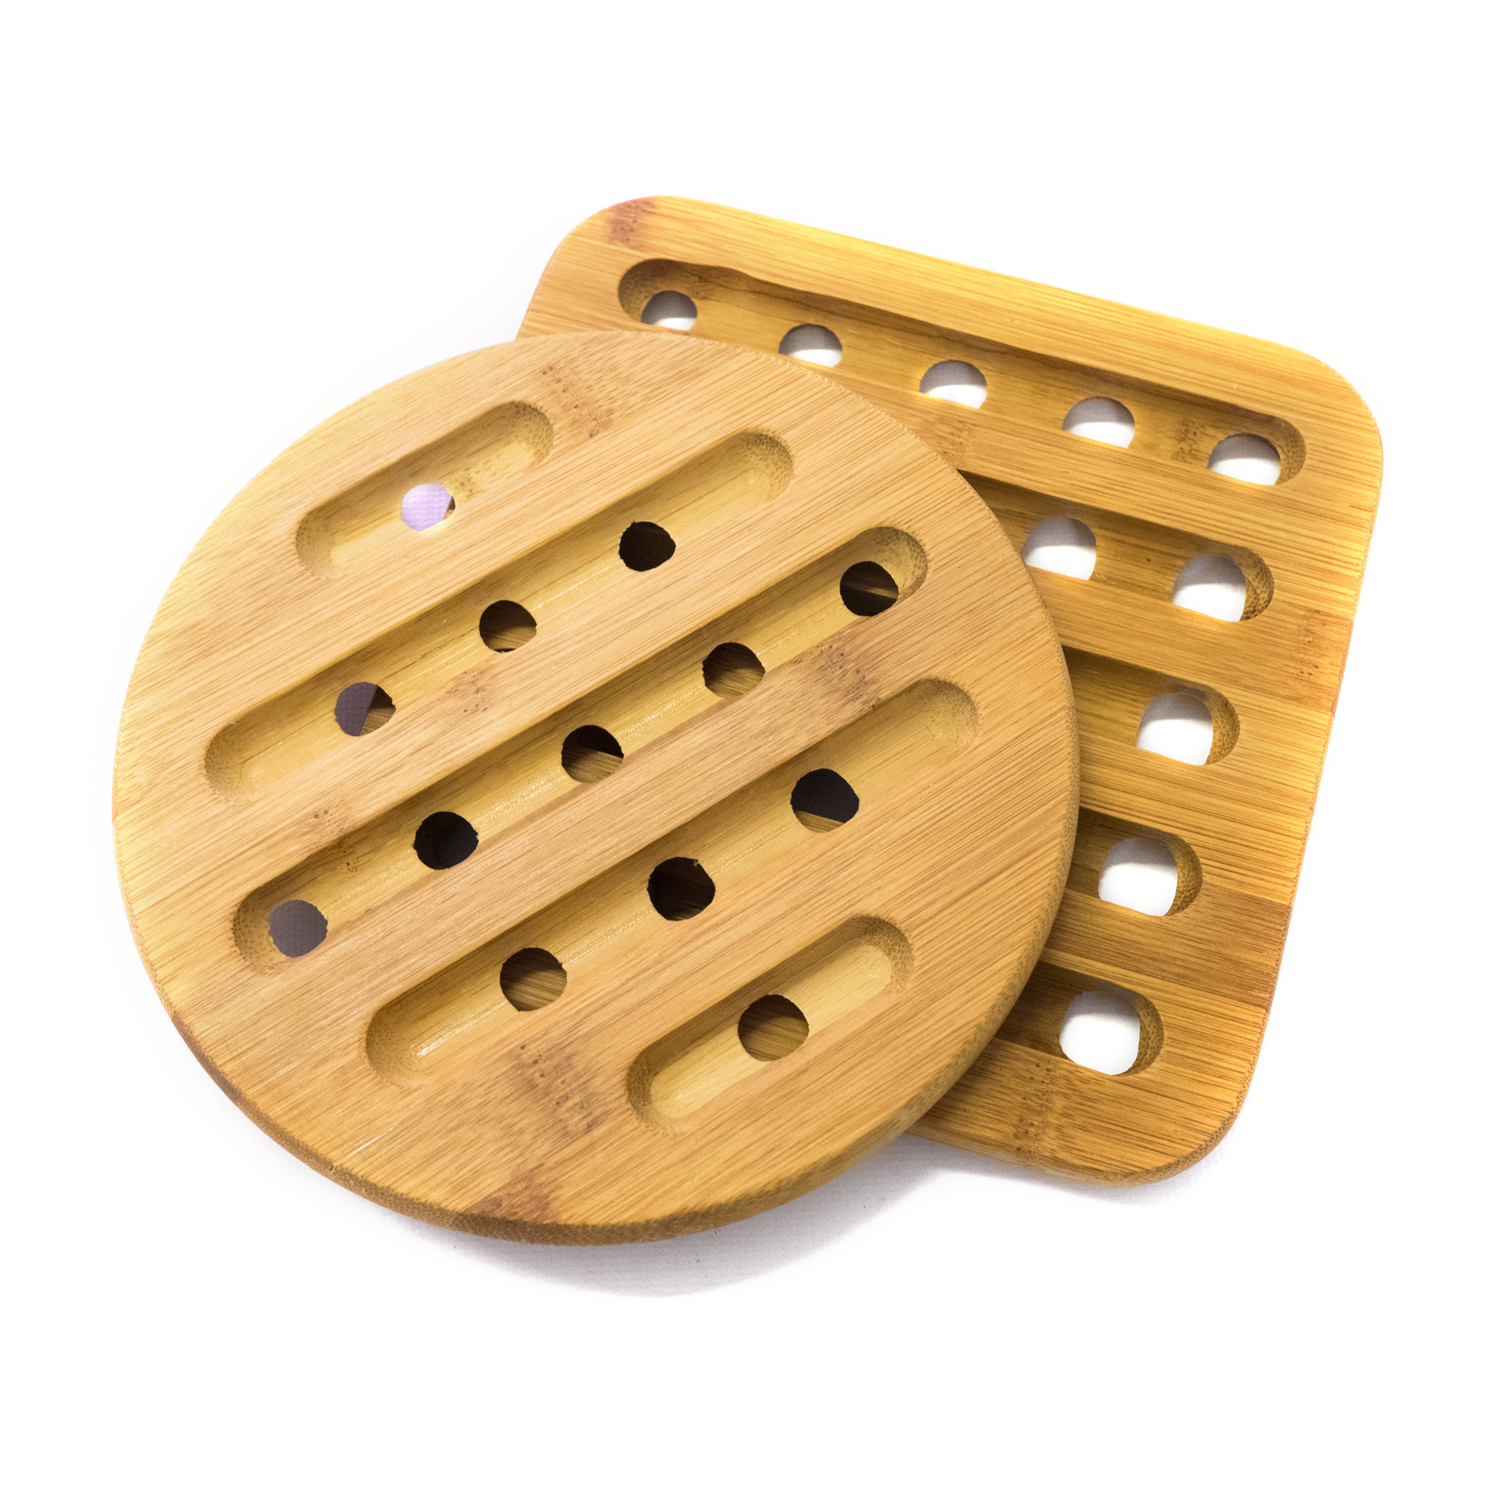 "2 Piece Bamboo Trivet Set square: 7"" x 7\ by HDS TRADING CORP"